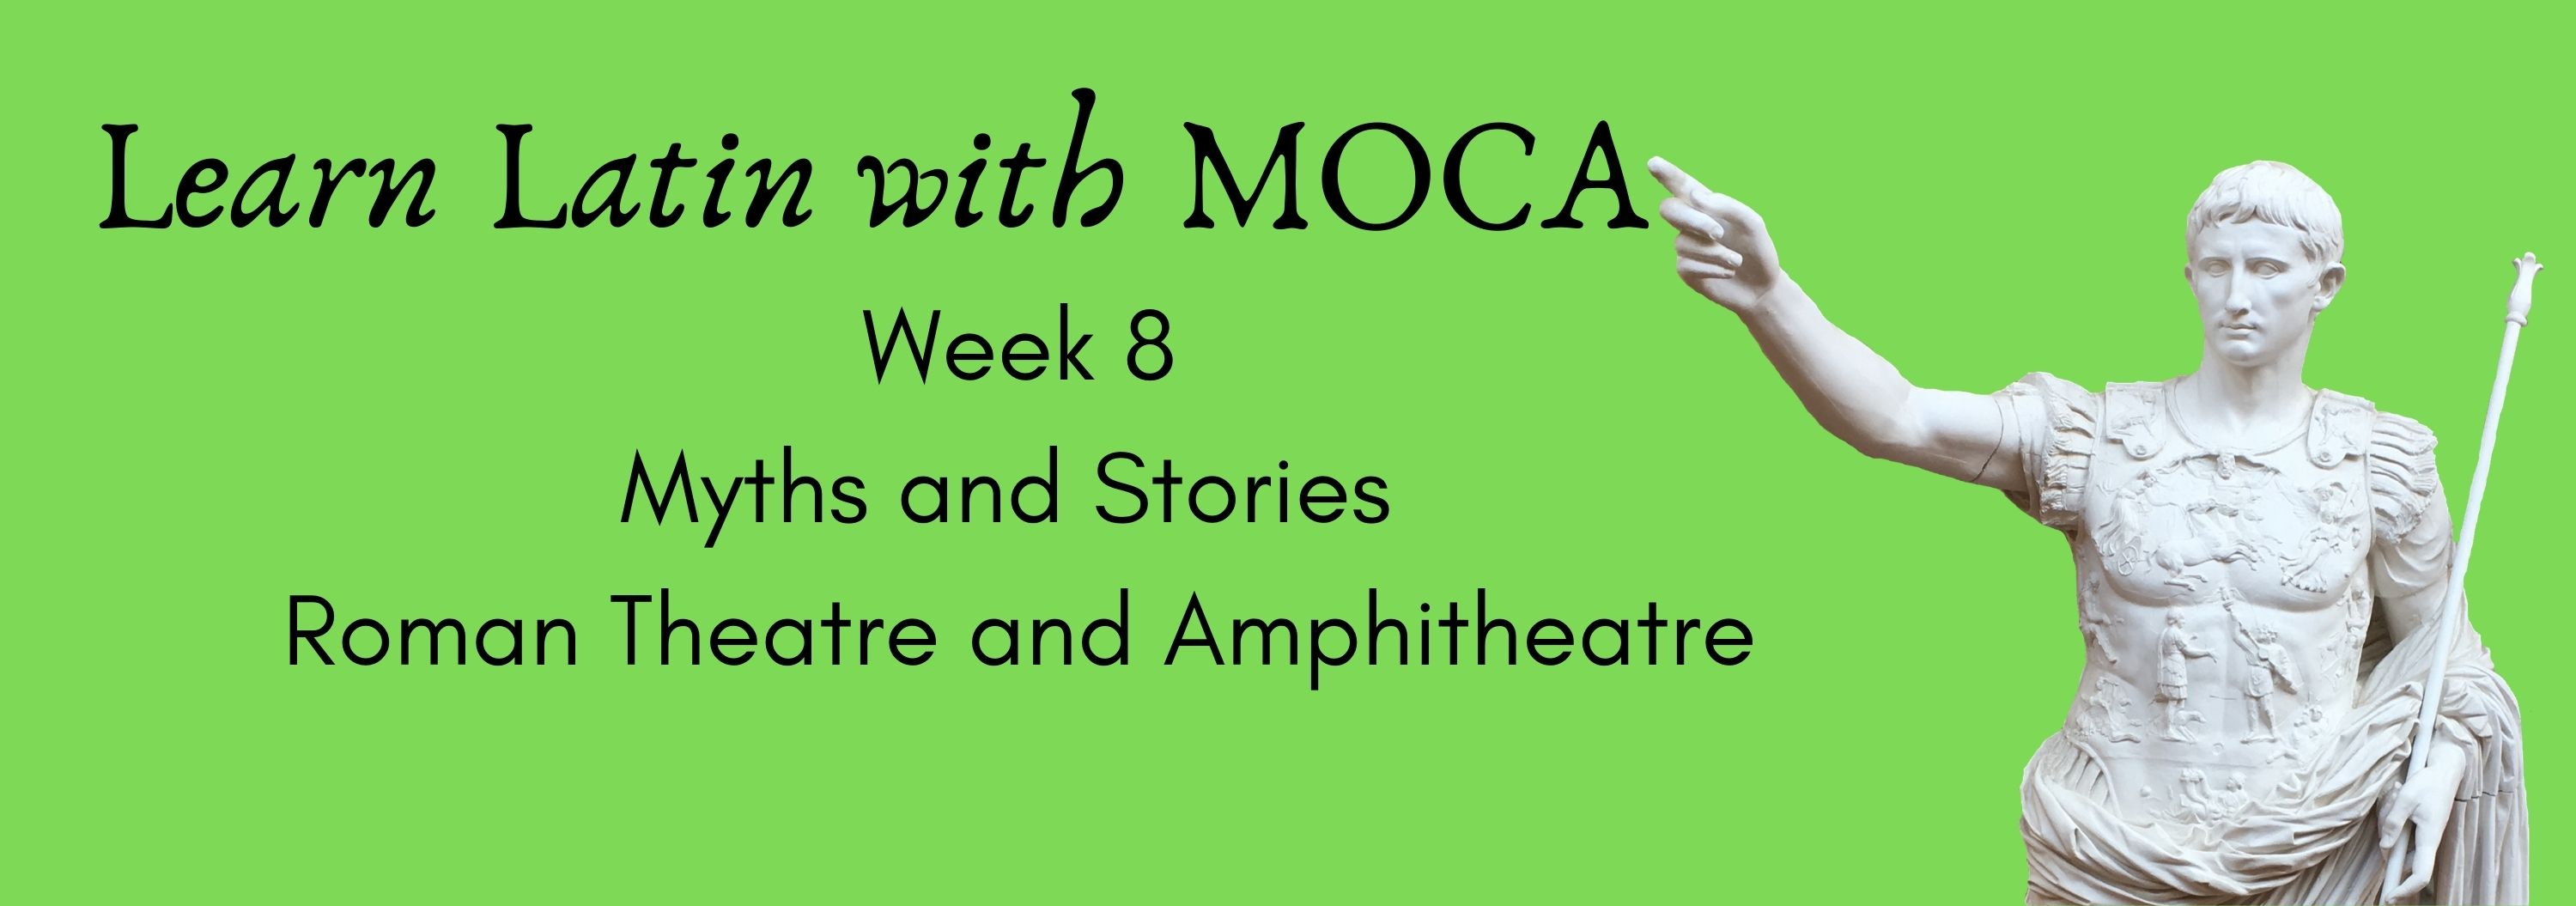 green background, statue of Augustus, text: Learn Latin with moca week 8.